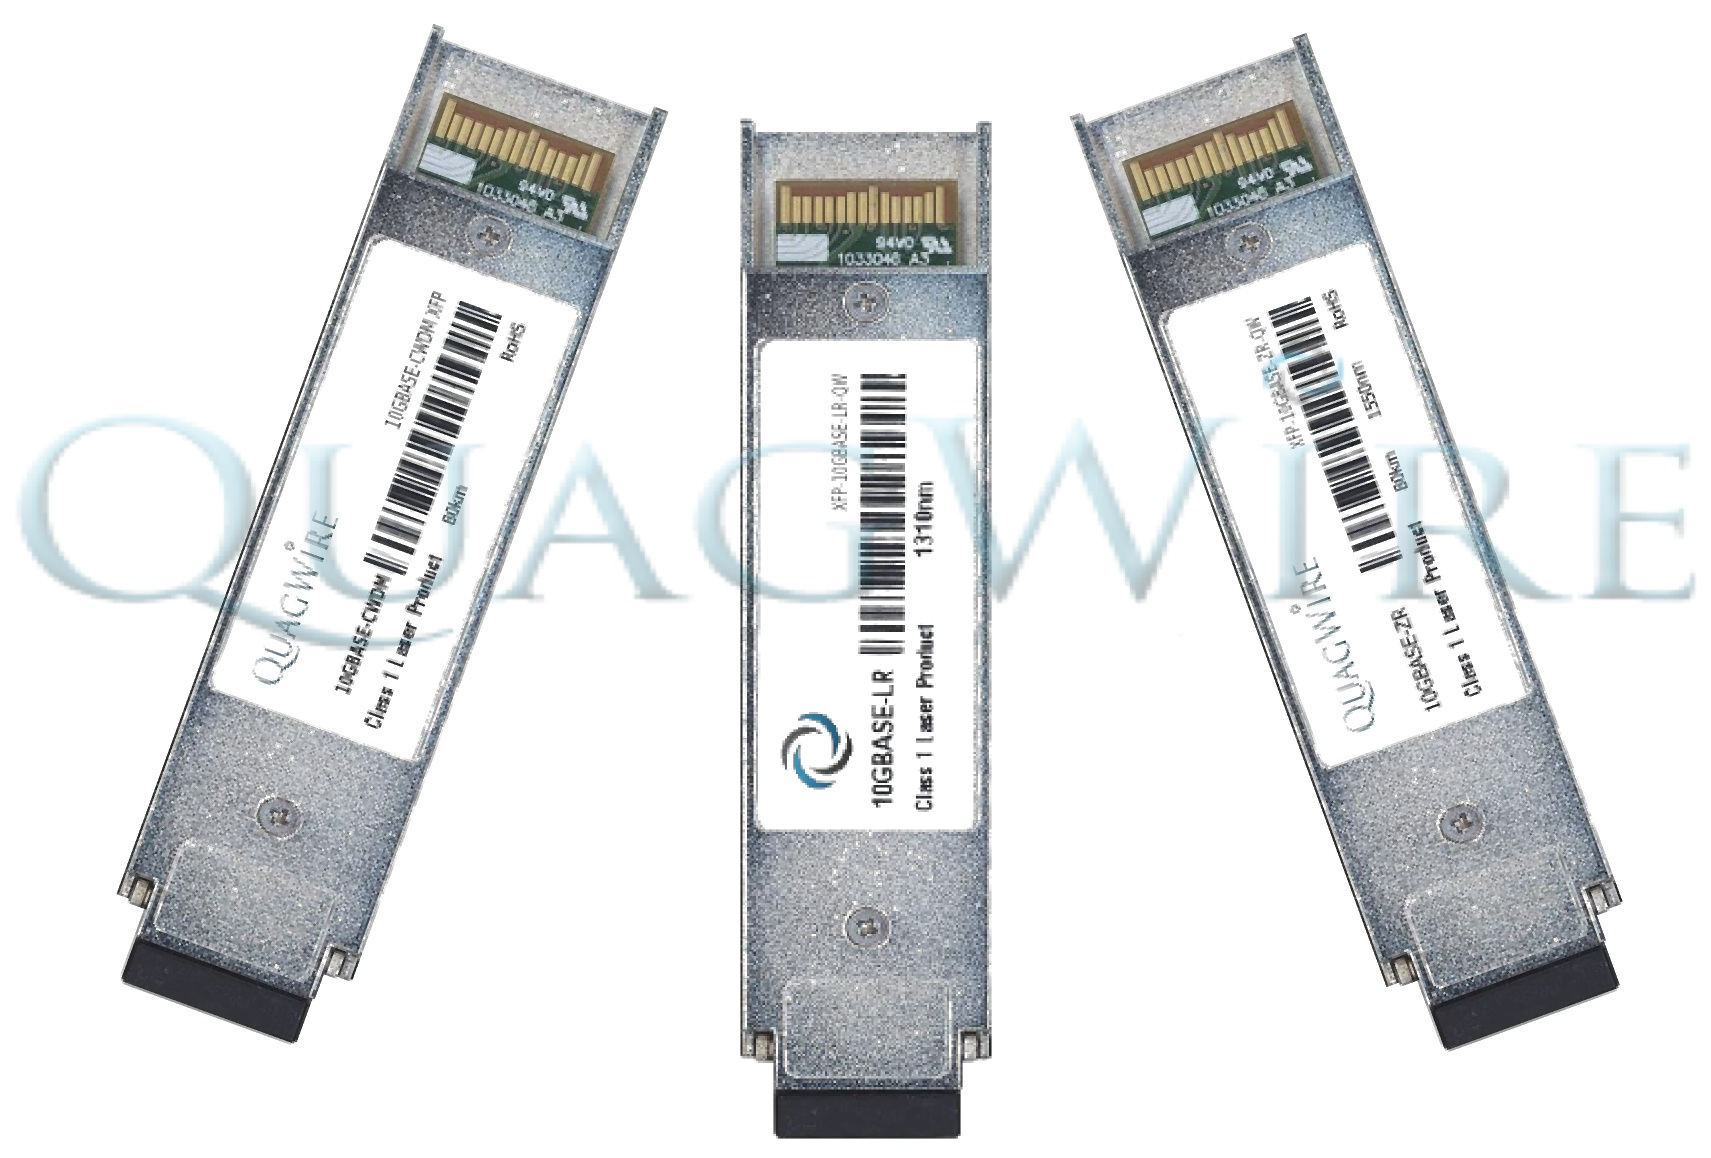 40GB-SR4-QSFP – Enterasys Compatible QSFP+ Transceiver